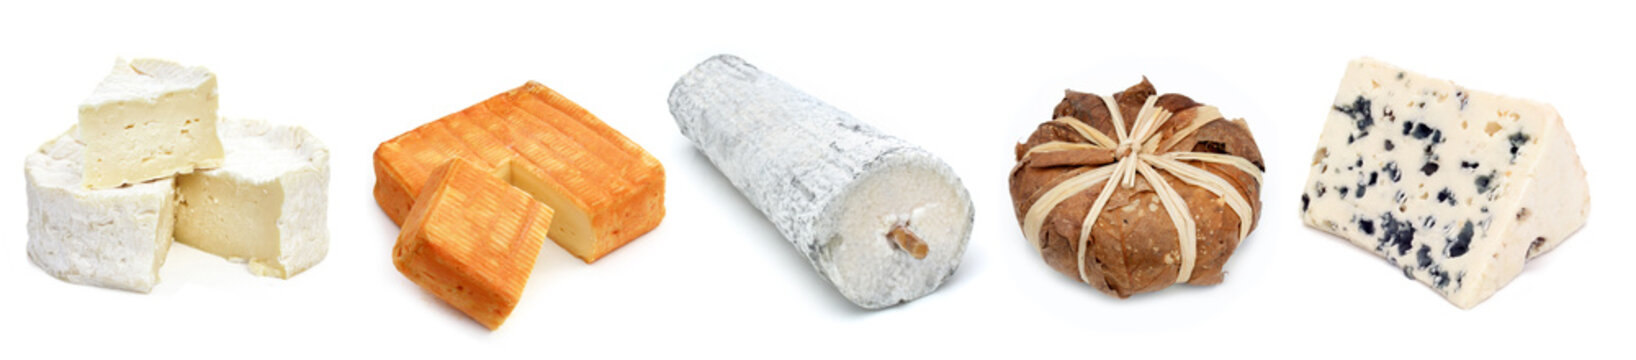 Fromage français - French cheese